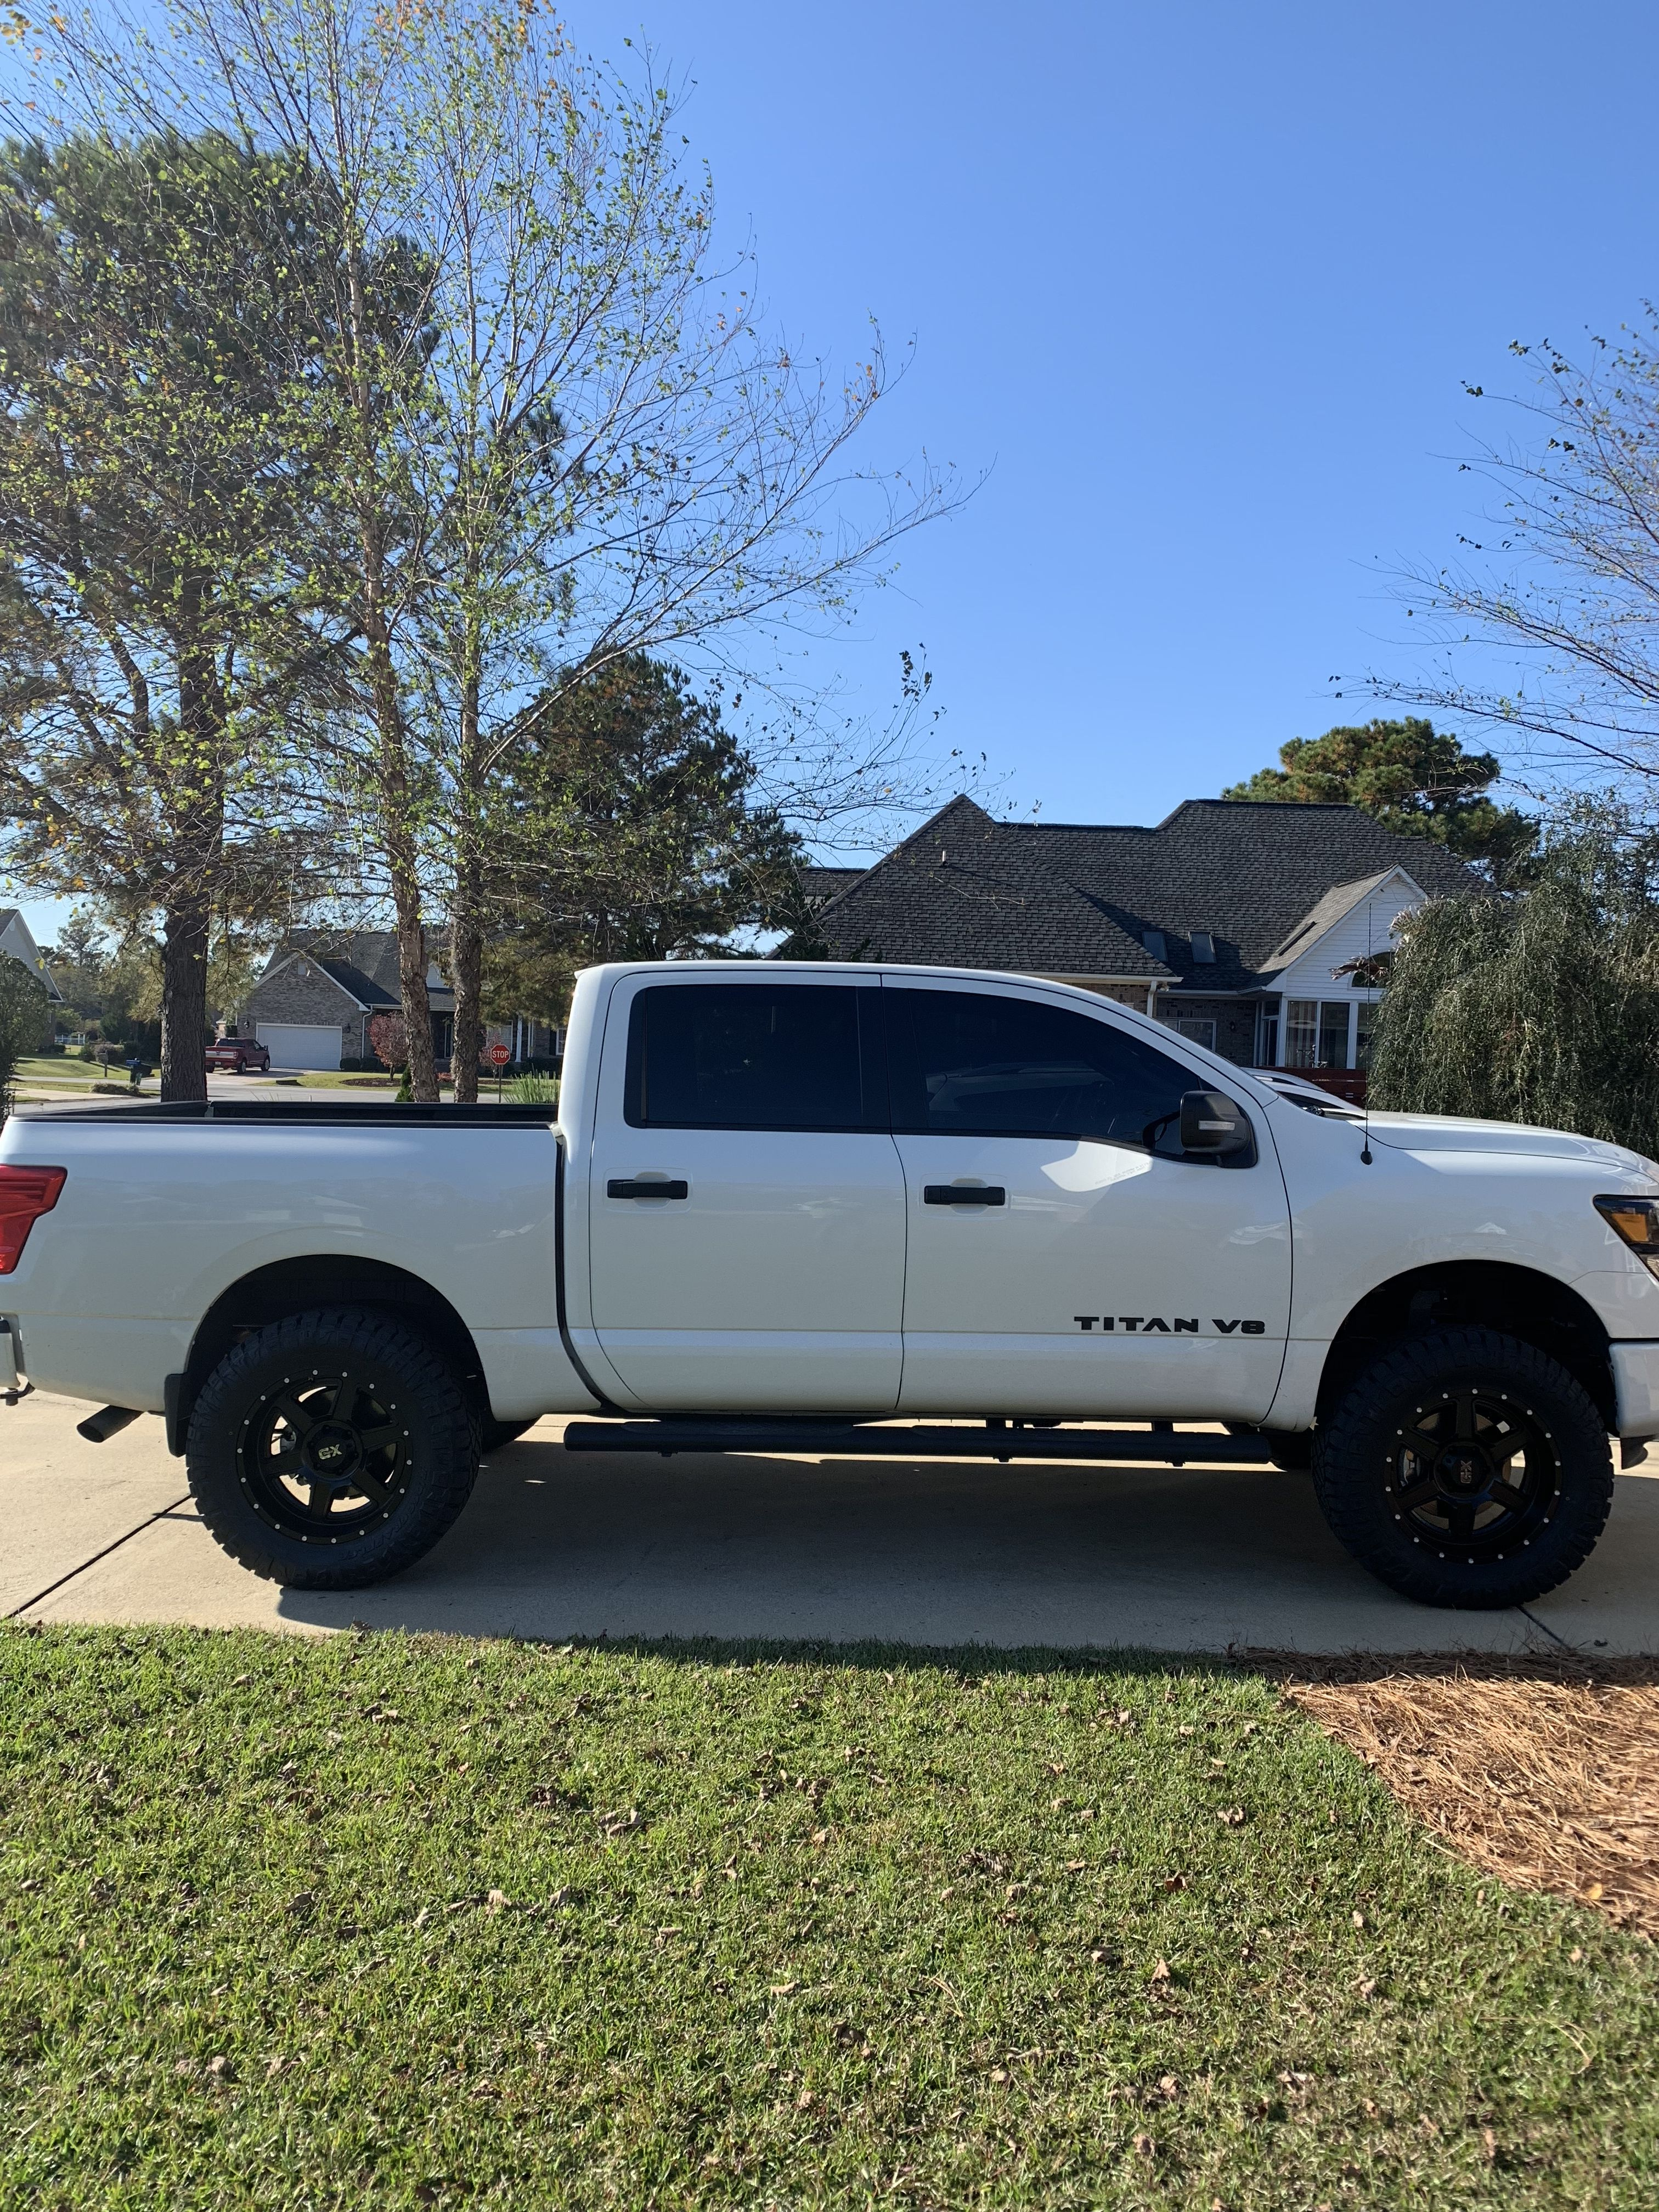 Lifted Nissan Titan >> 2018 midnight edition titan with 6 inch Fabtech suspension lift on 35's   Nissan titan xd ...